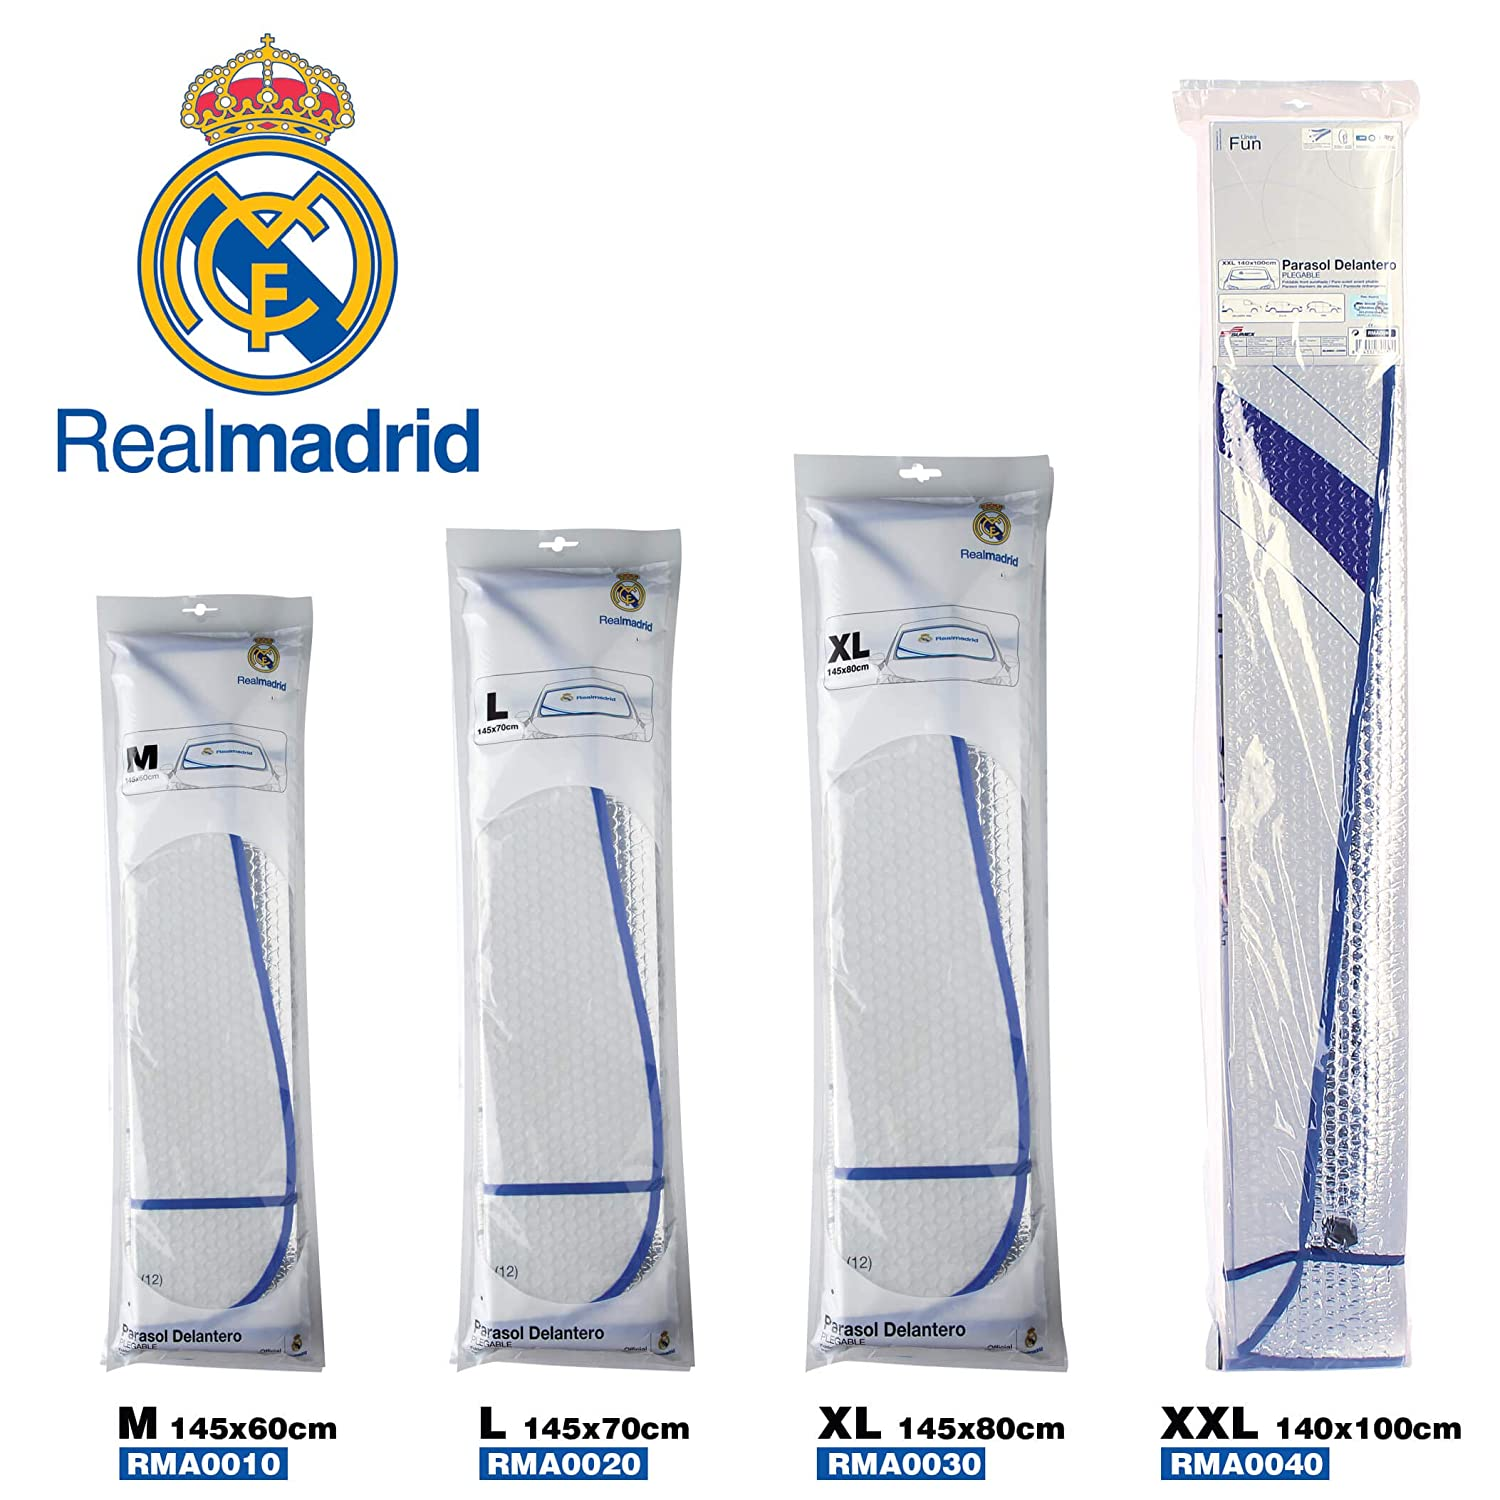 Sumex RMA0020 Front Sunshades 145X70 cm Real Madrid